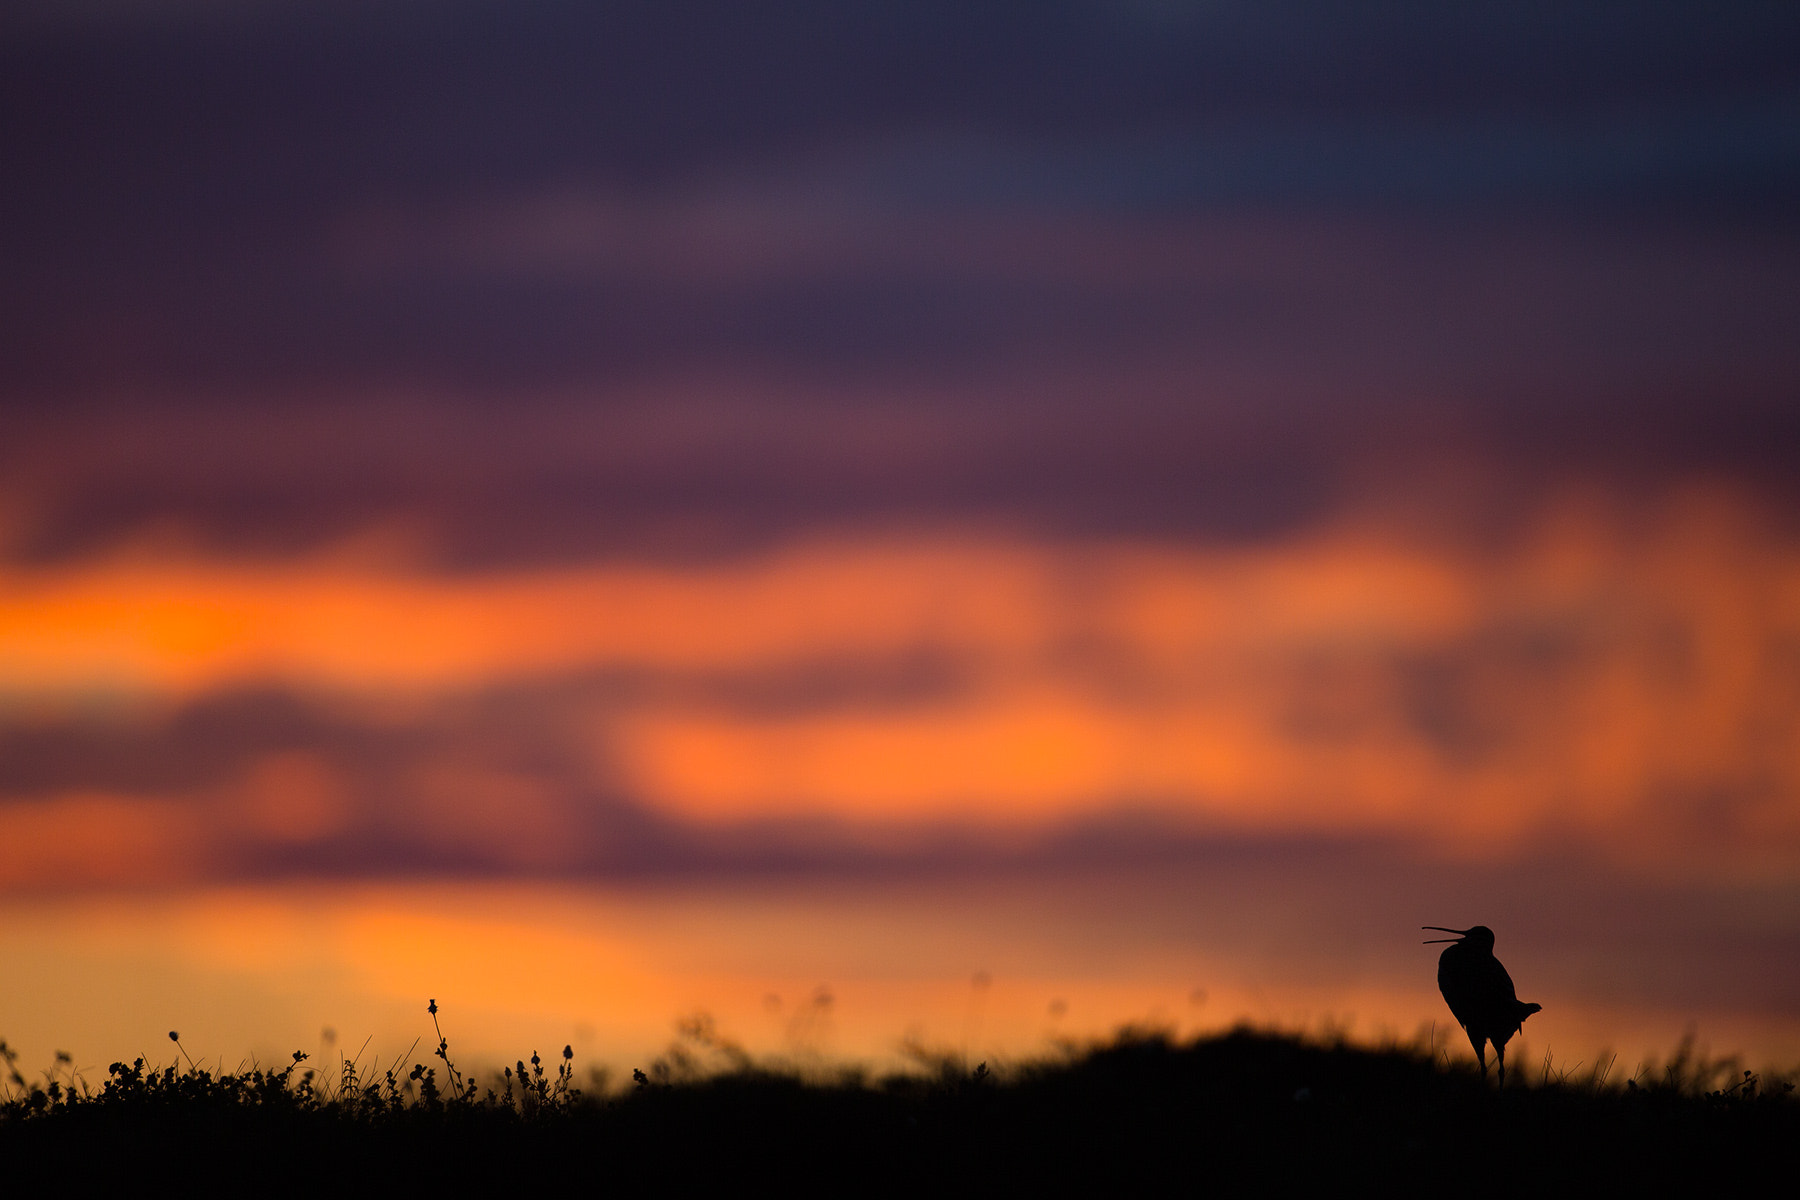 Photograph Great Snipe displaying in twilight by Daniel Pettersson on 500px